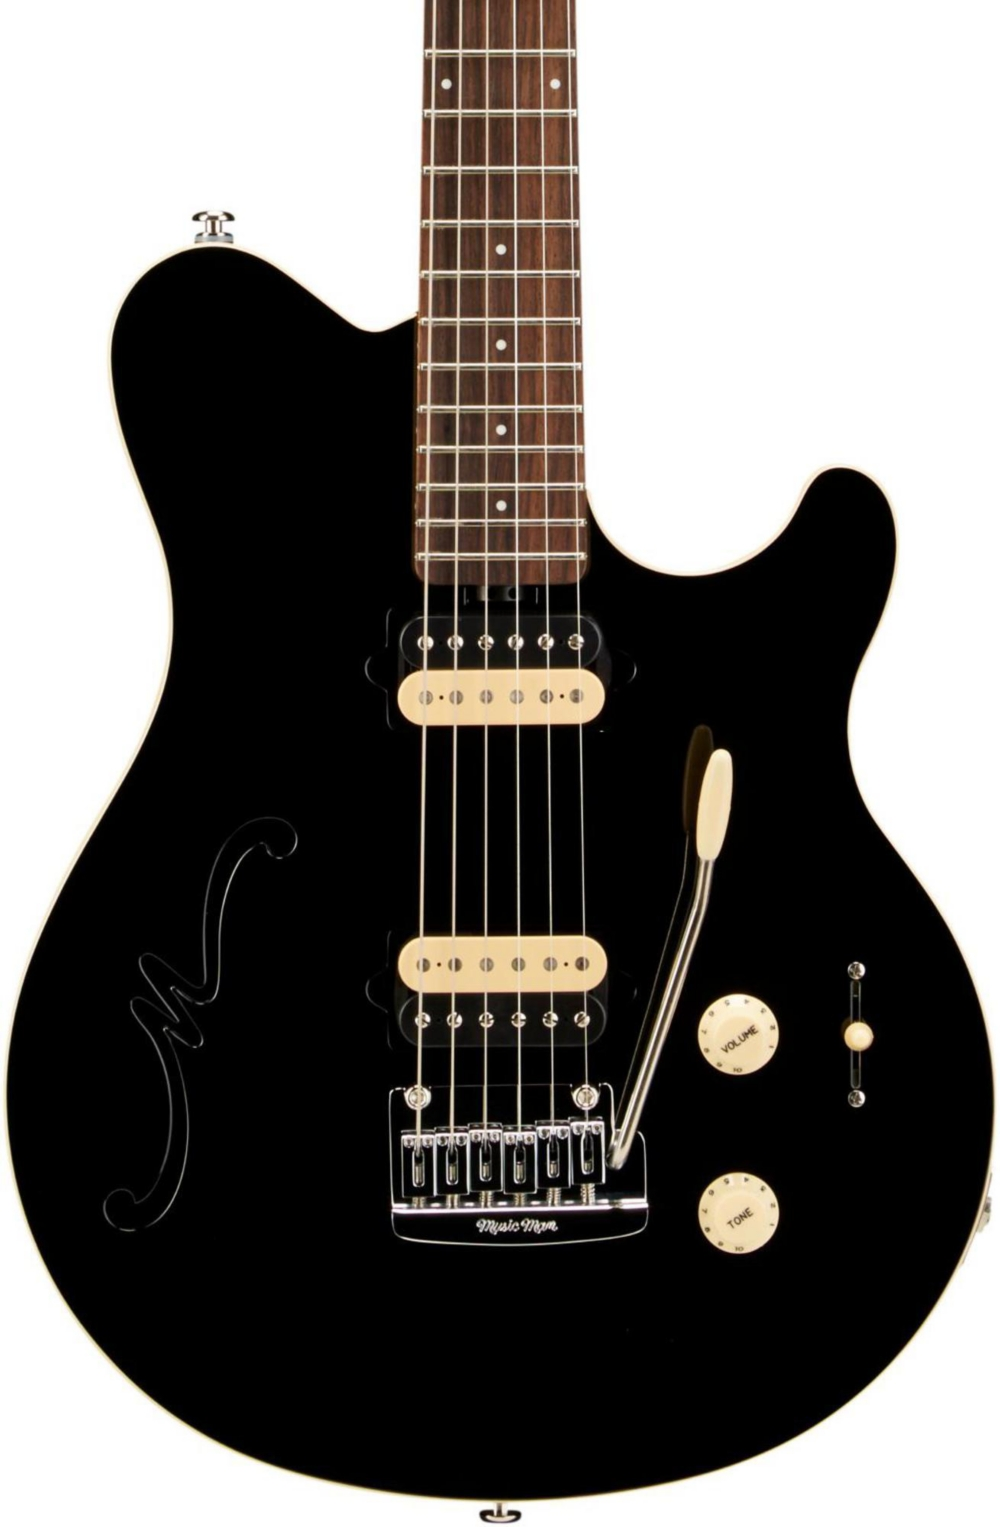 Axis Super Sport HH Hollowbody Electric Guitar with Tremolo by Ernie Ball Music Man